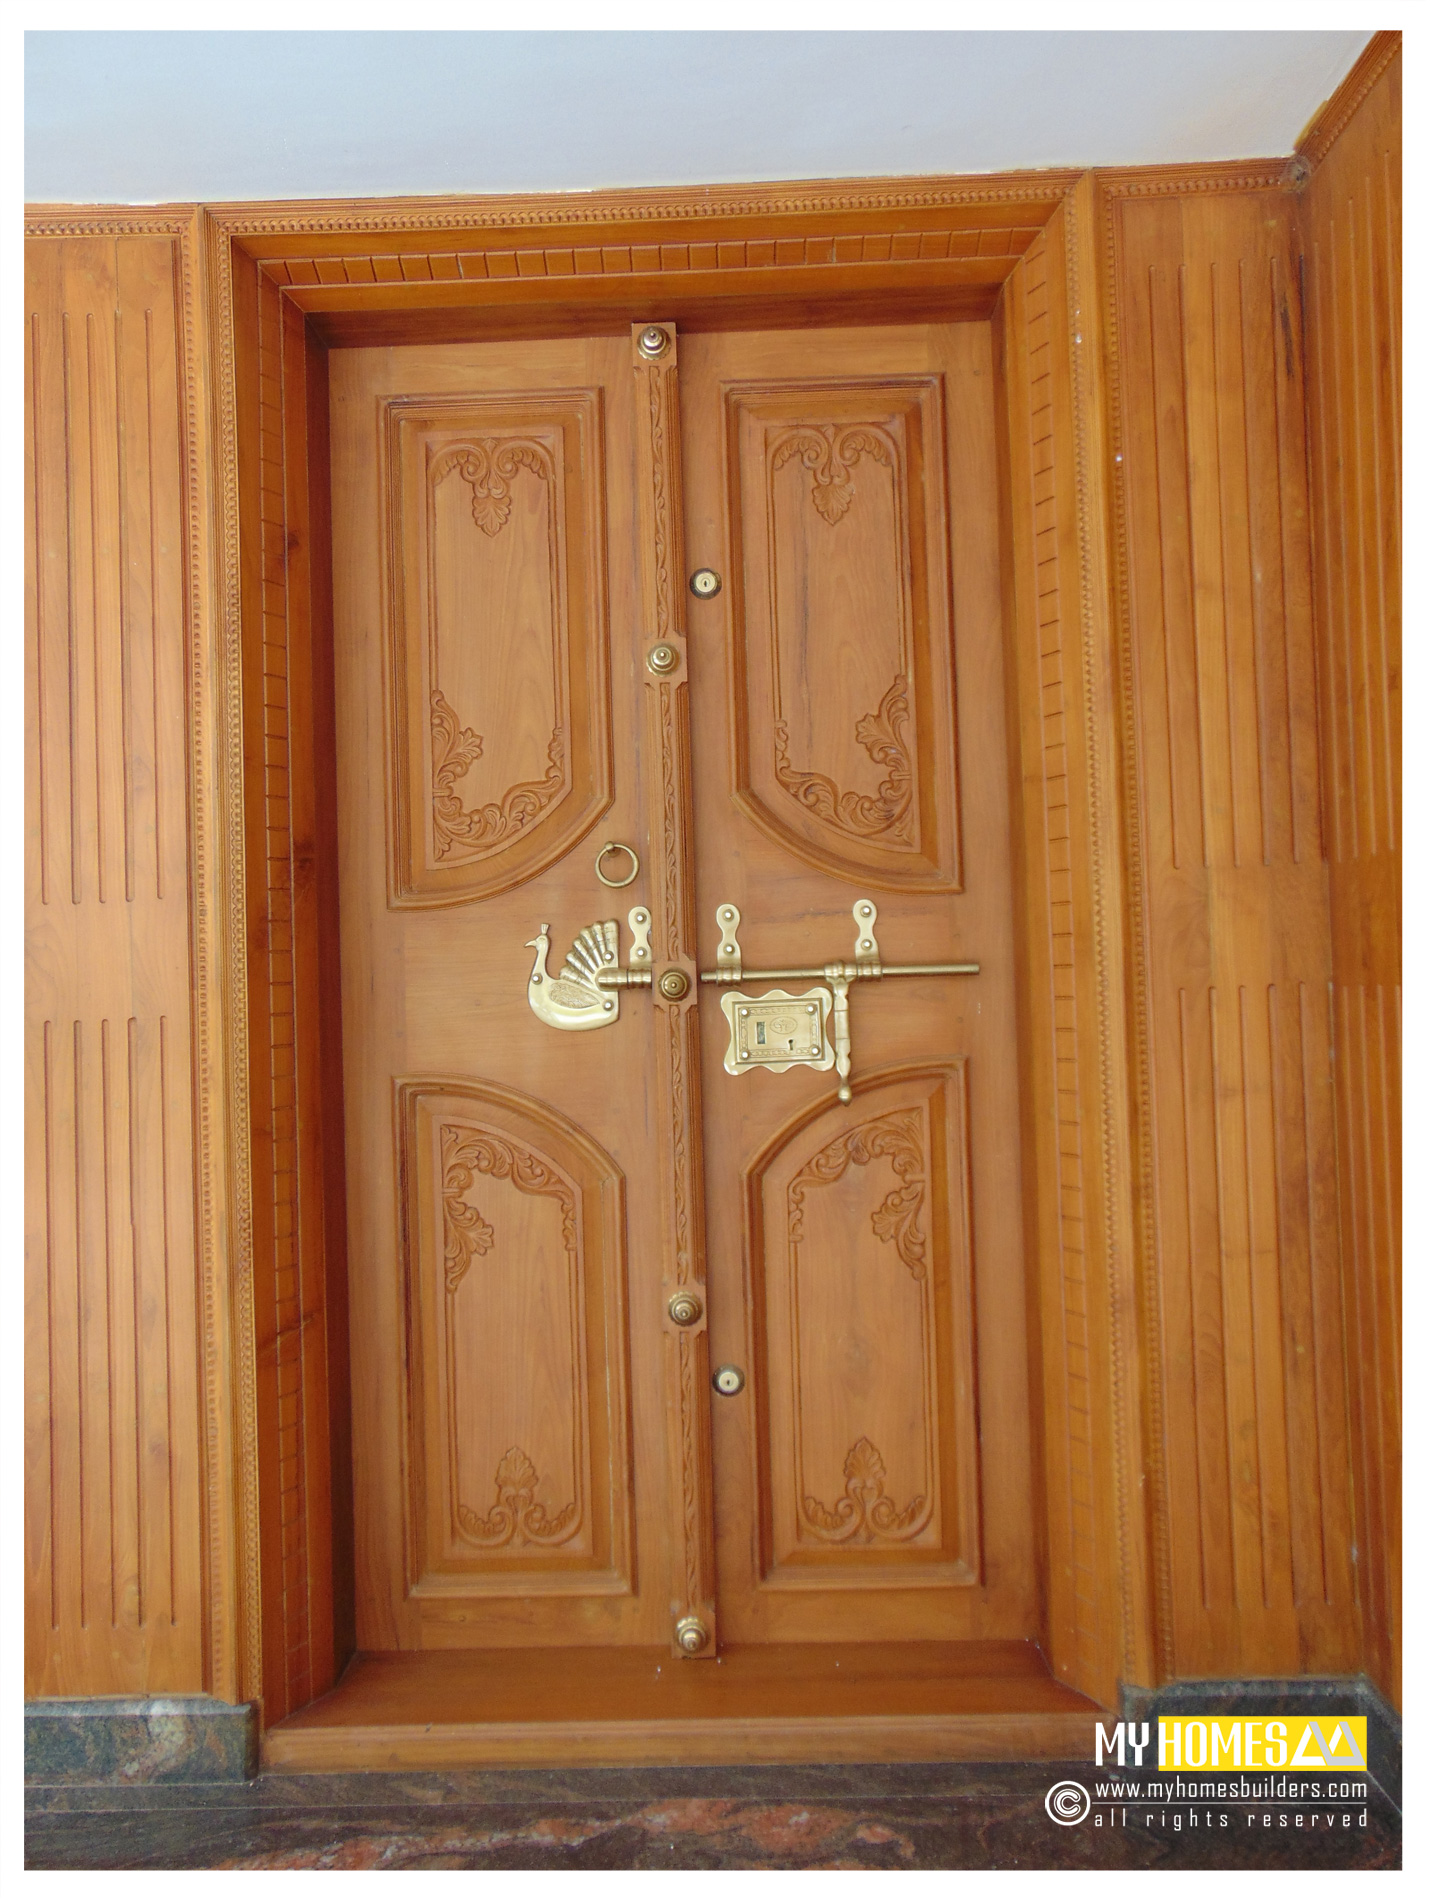 Astonishing front door images india images ideas house for Indian main double door designs